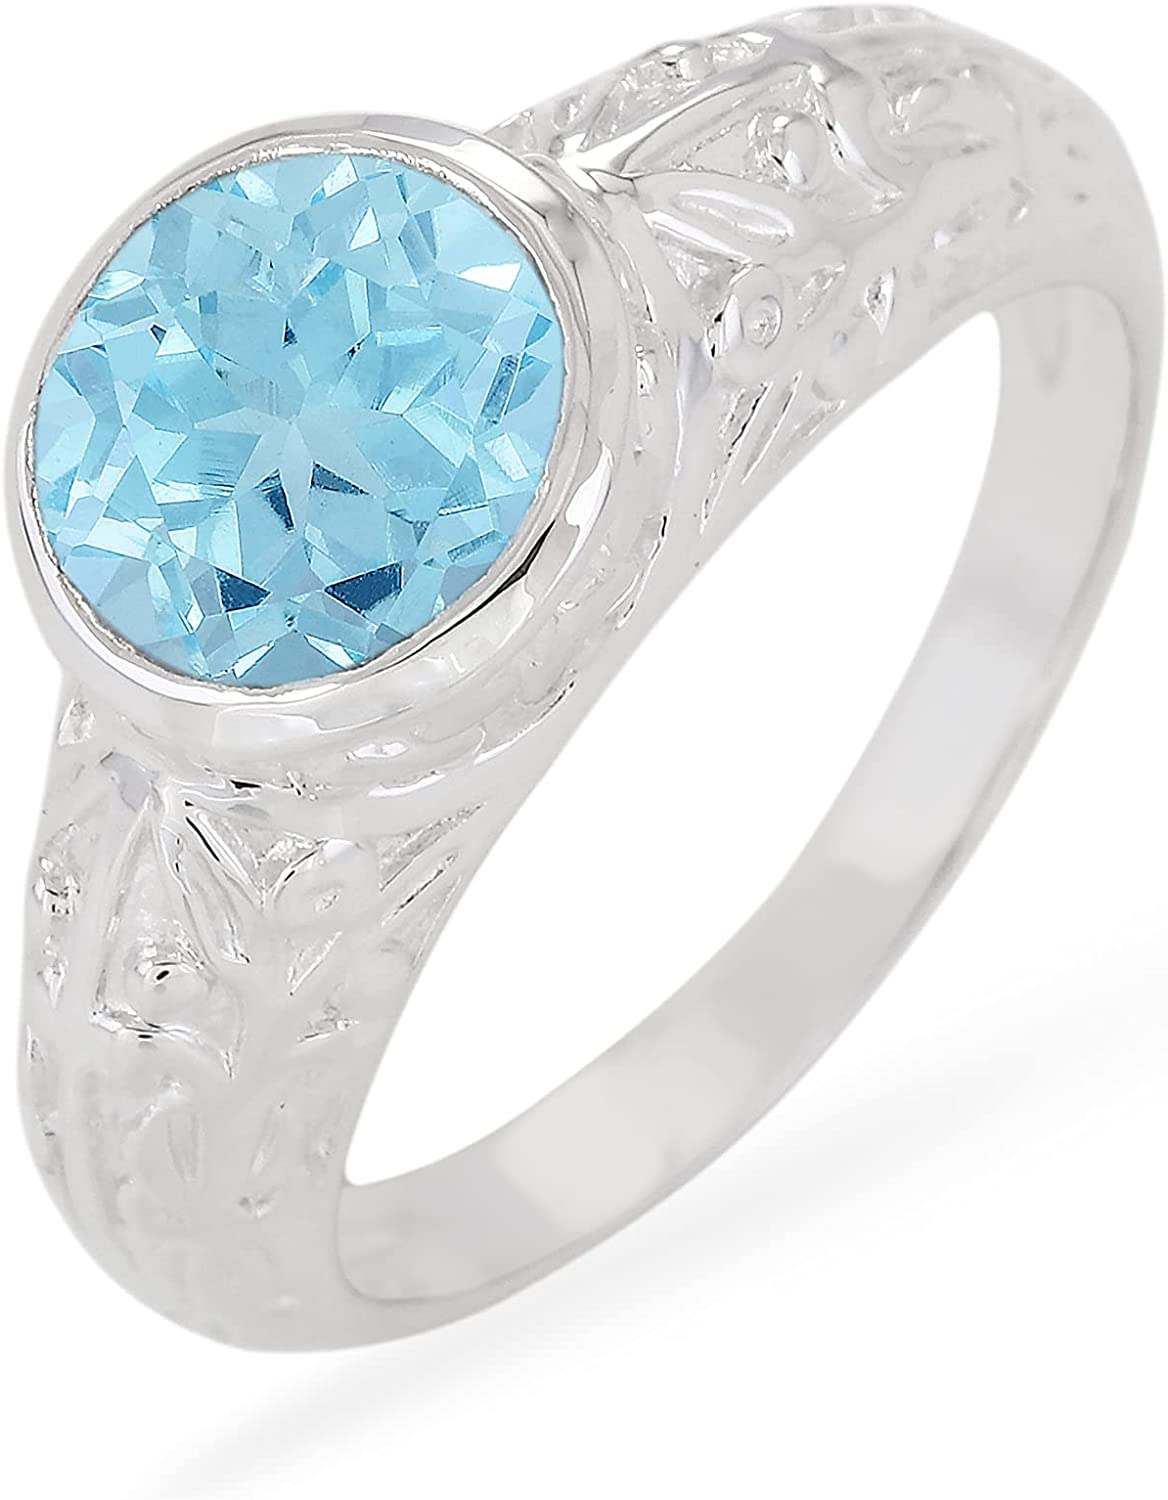 ATELIER PINKCITY Bezel Max 80% OFF Set Round Gemstone Rin Solitaire Cheap super special price Engraved